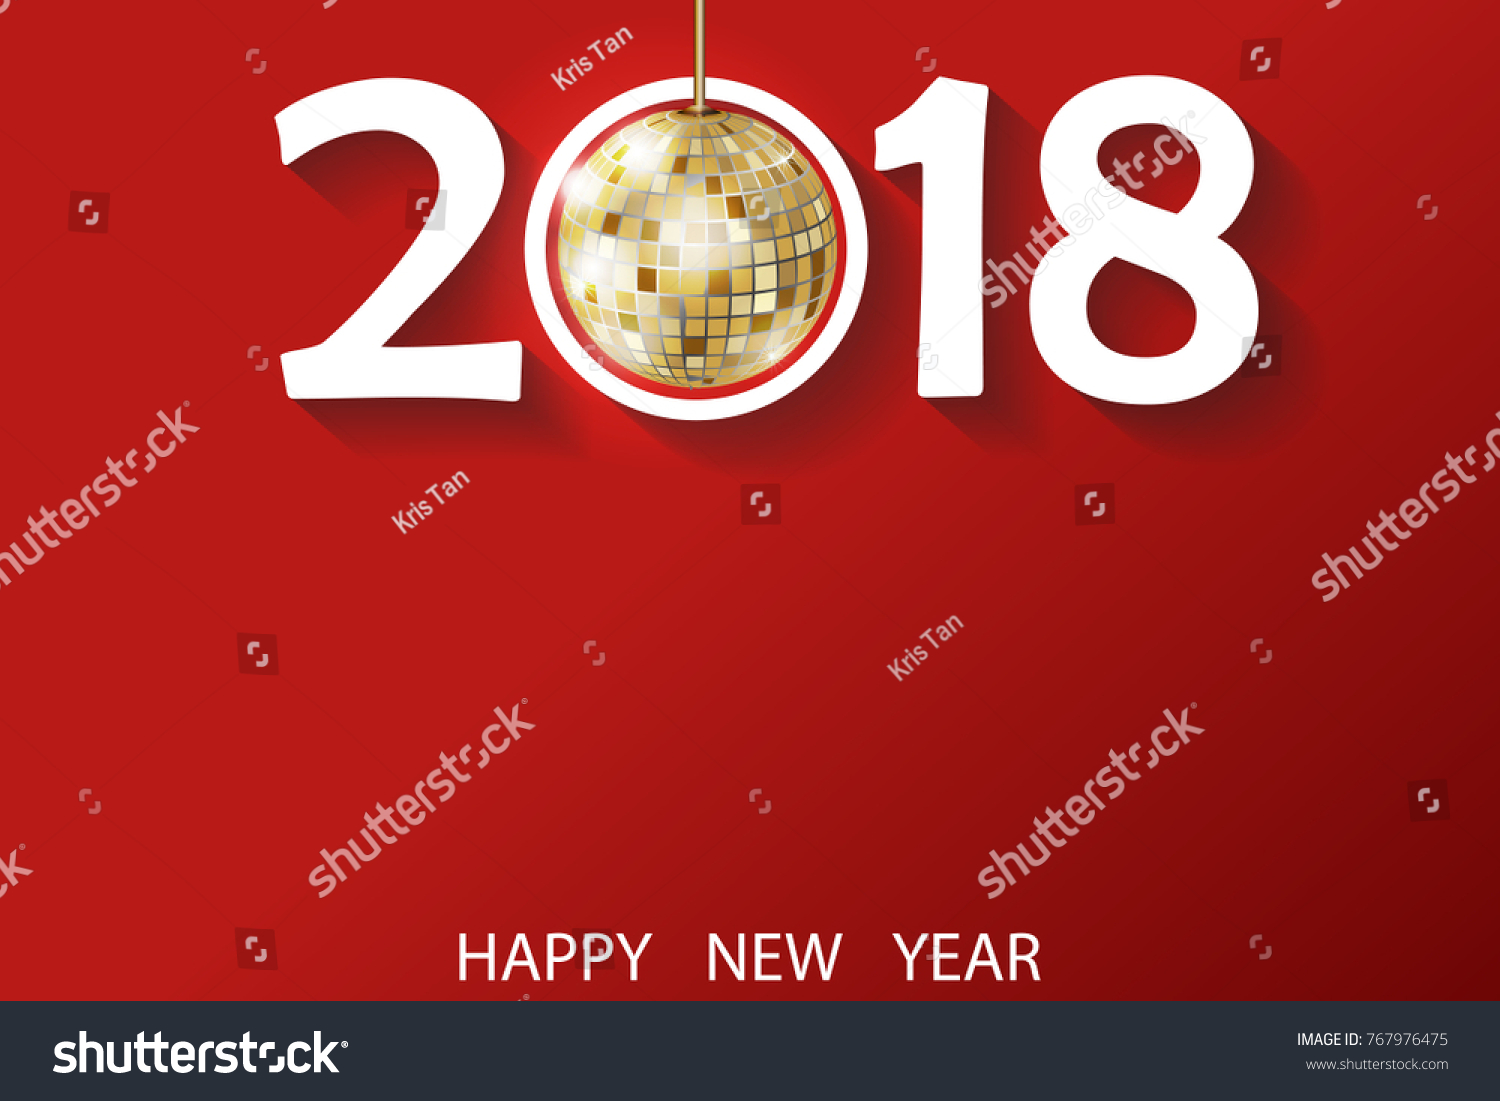 happy new year 2018 greeting card stock vector 767976475